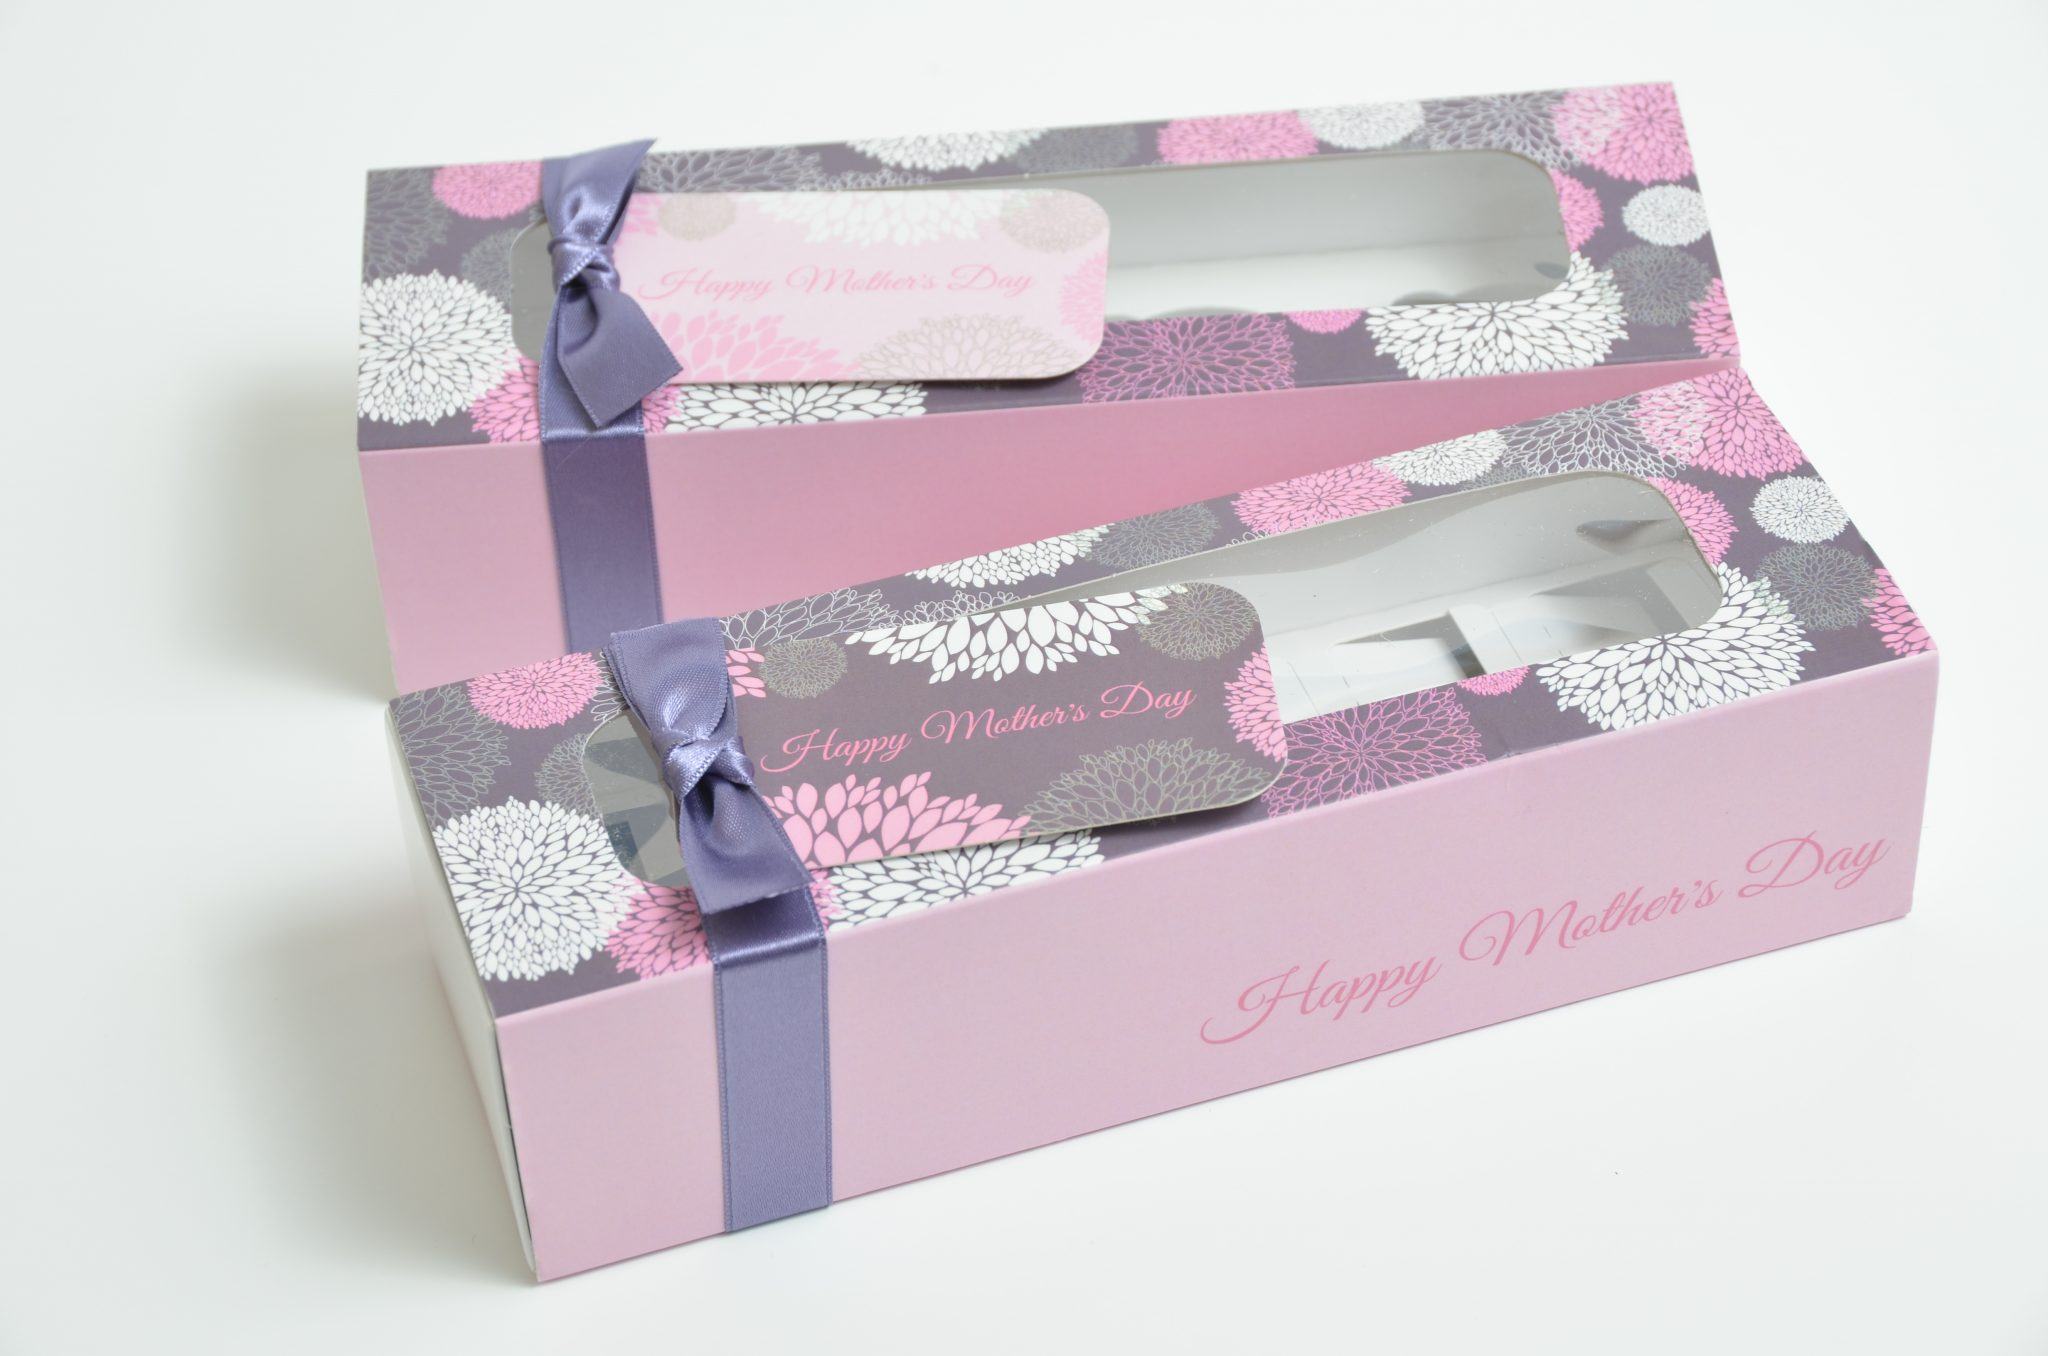 Mothers Day Windowed Pink 6 Pk Slider Macaron Box